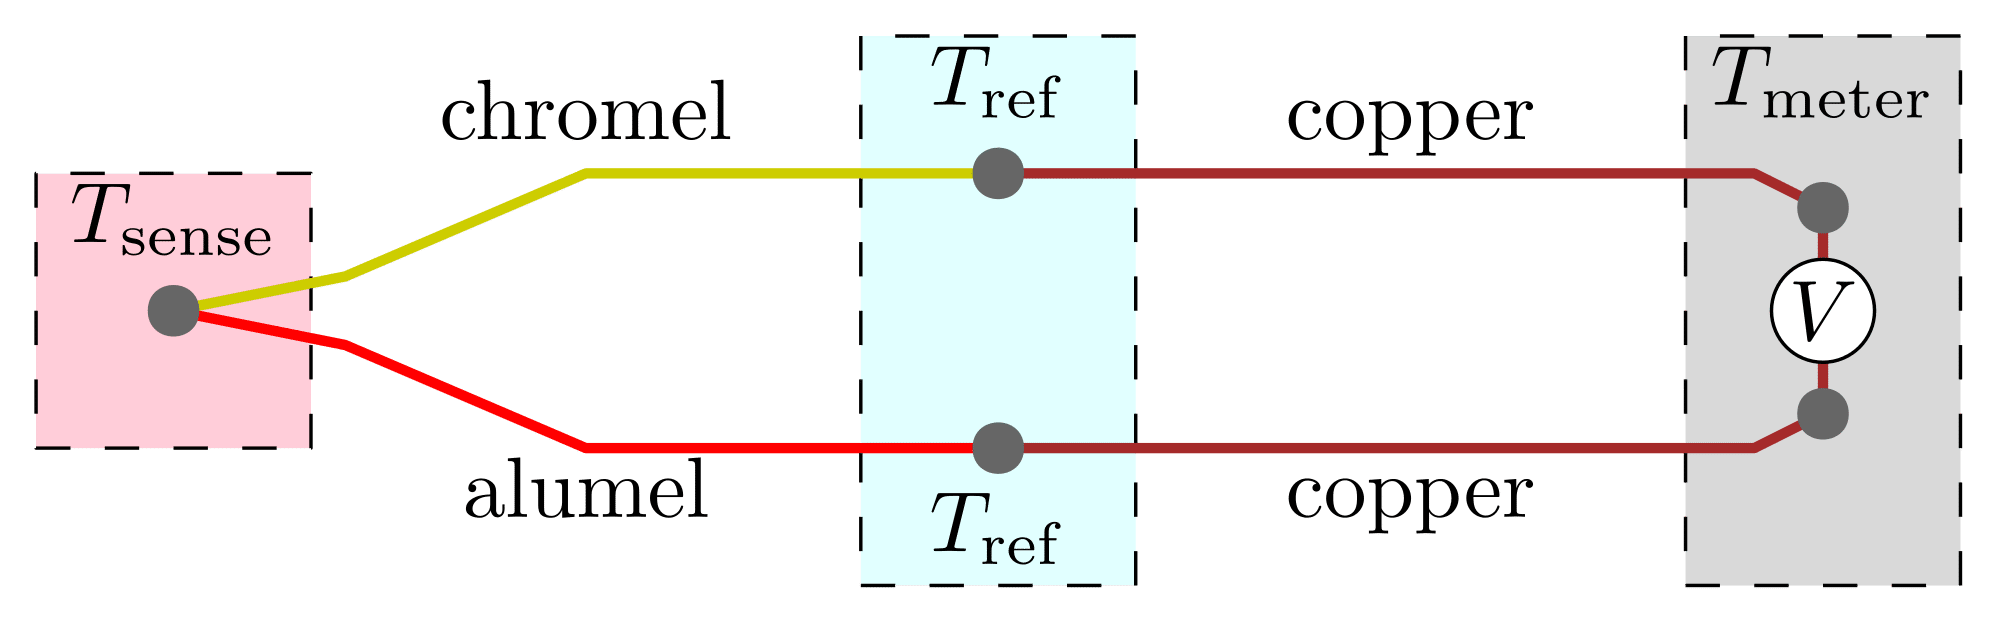 Thermocouple physics - How it works